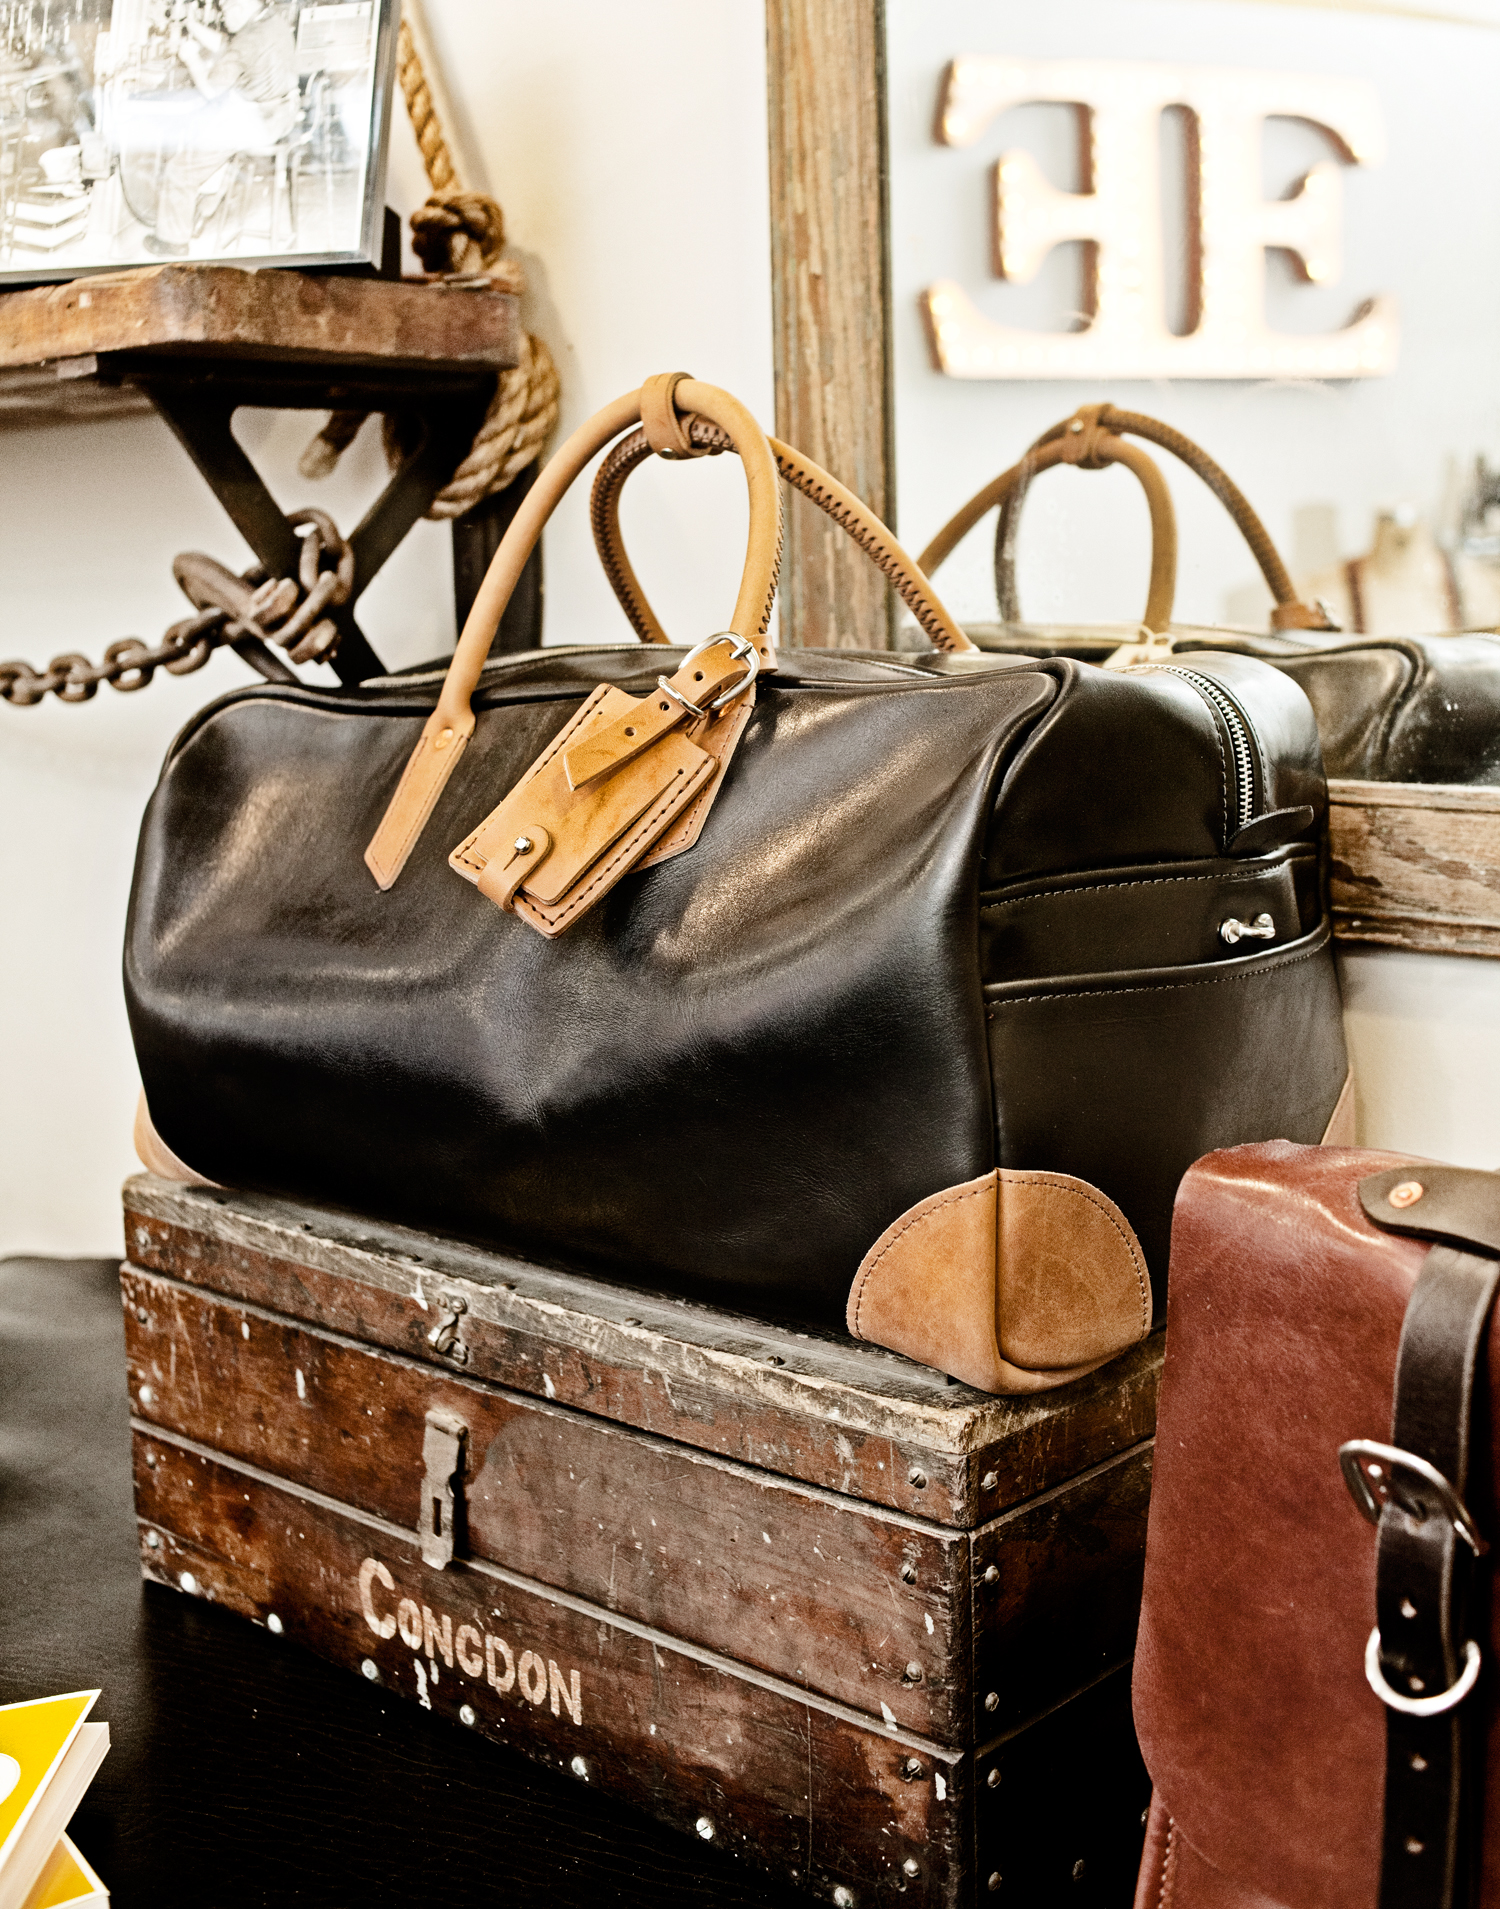 A handcrafted Emil Erwin men's bag. Emil Erwin hand makes luxury leather bags and accessories.